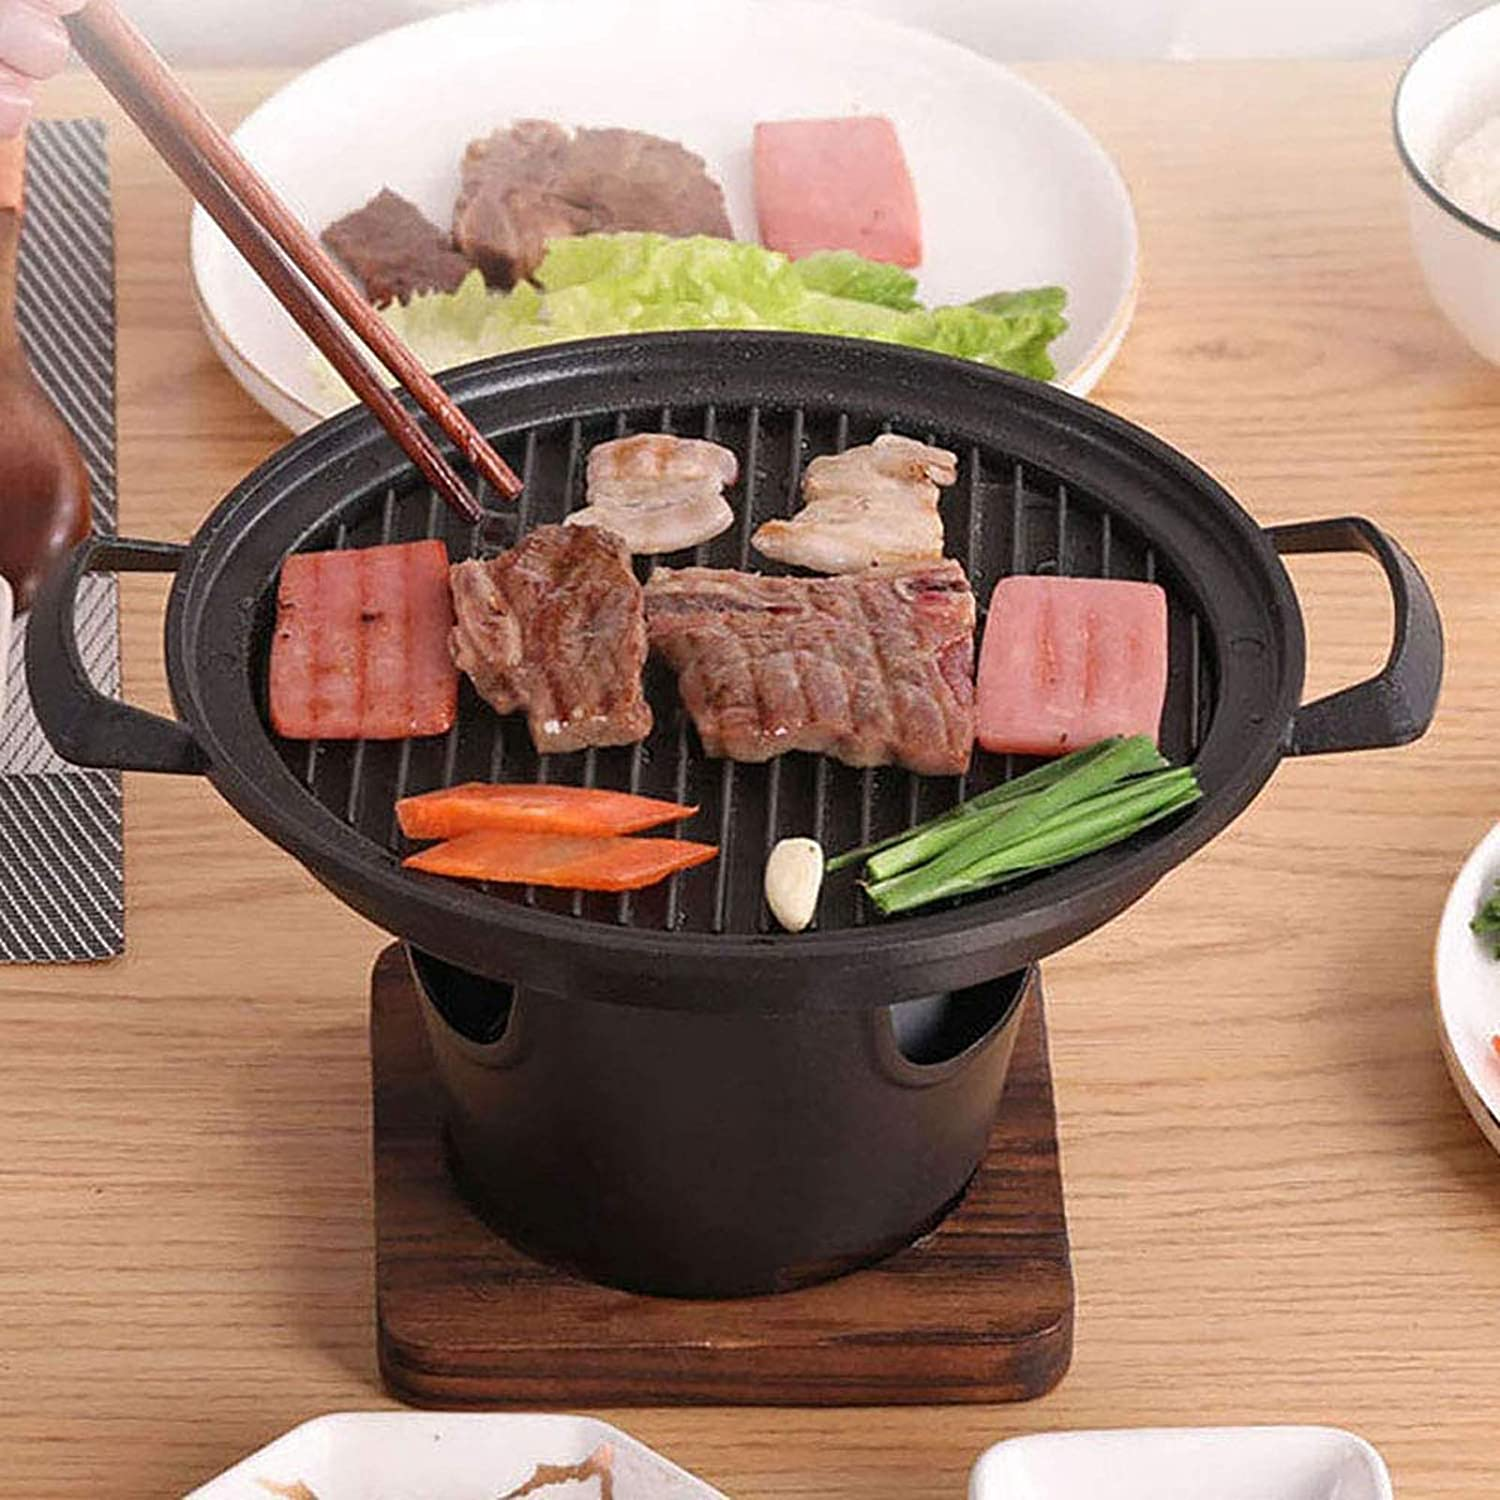 BBQ Alcohol Stove Cast Iron and Aluminum Alloy Mini Grill Single Serving Household Hibachi Grill Roasting Pans with Wooden Base & Fuel Holder